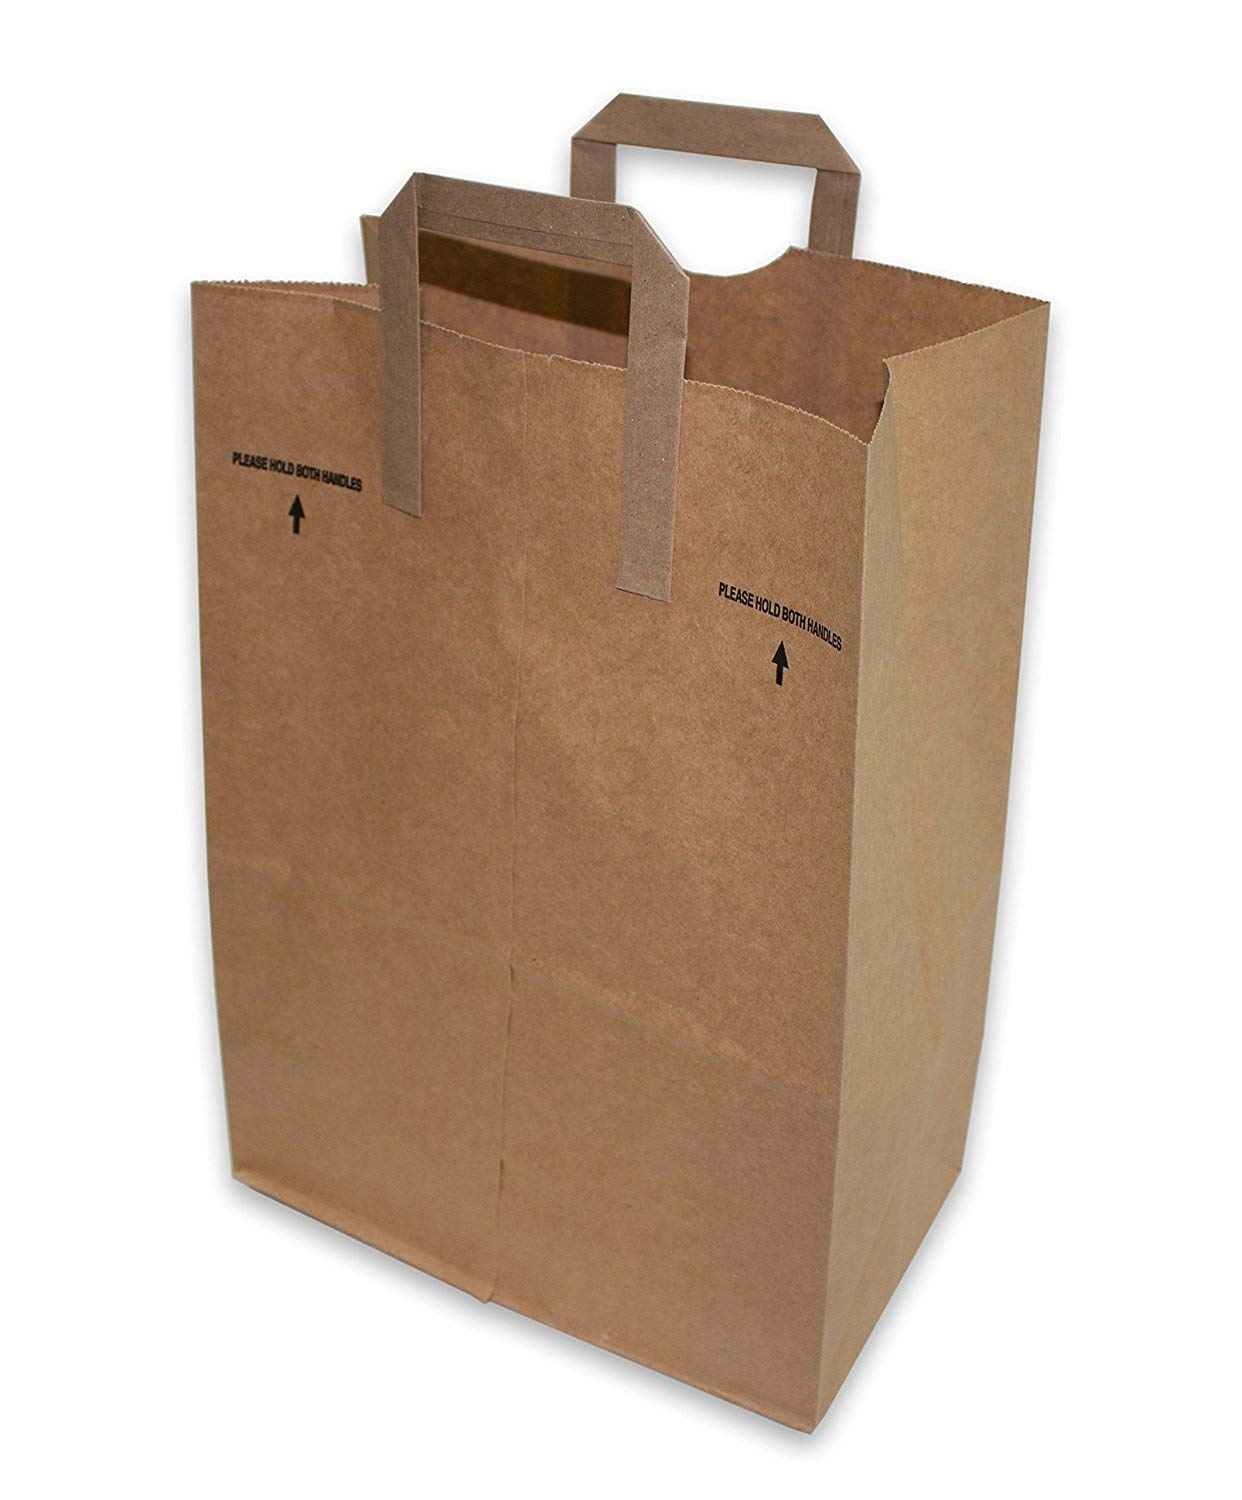 50 Paper Retail Grocery Bags Kraft with Handles 12x7x17 by Duro by Duro (Image #1)